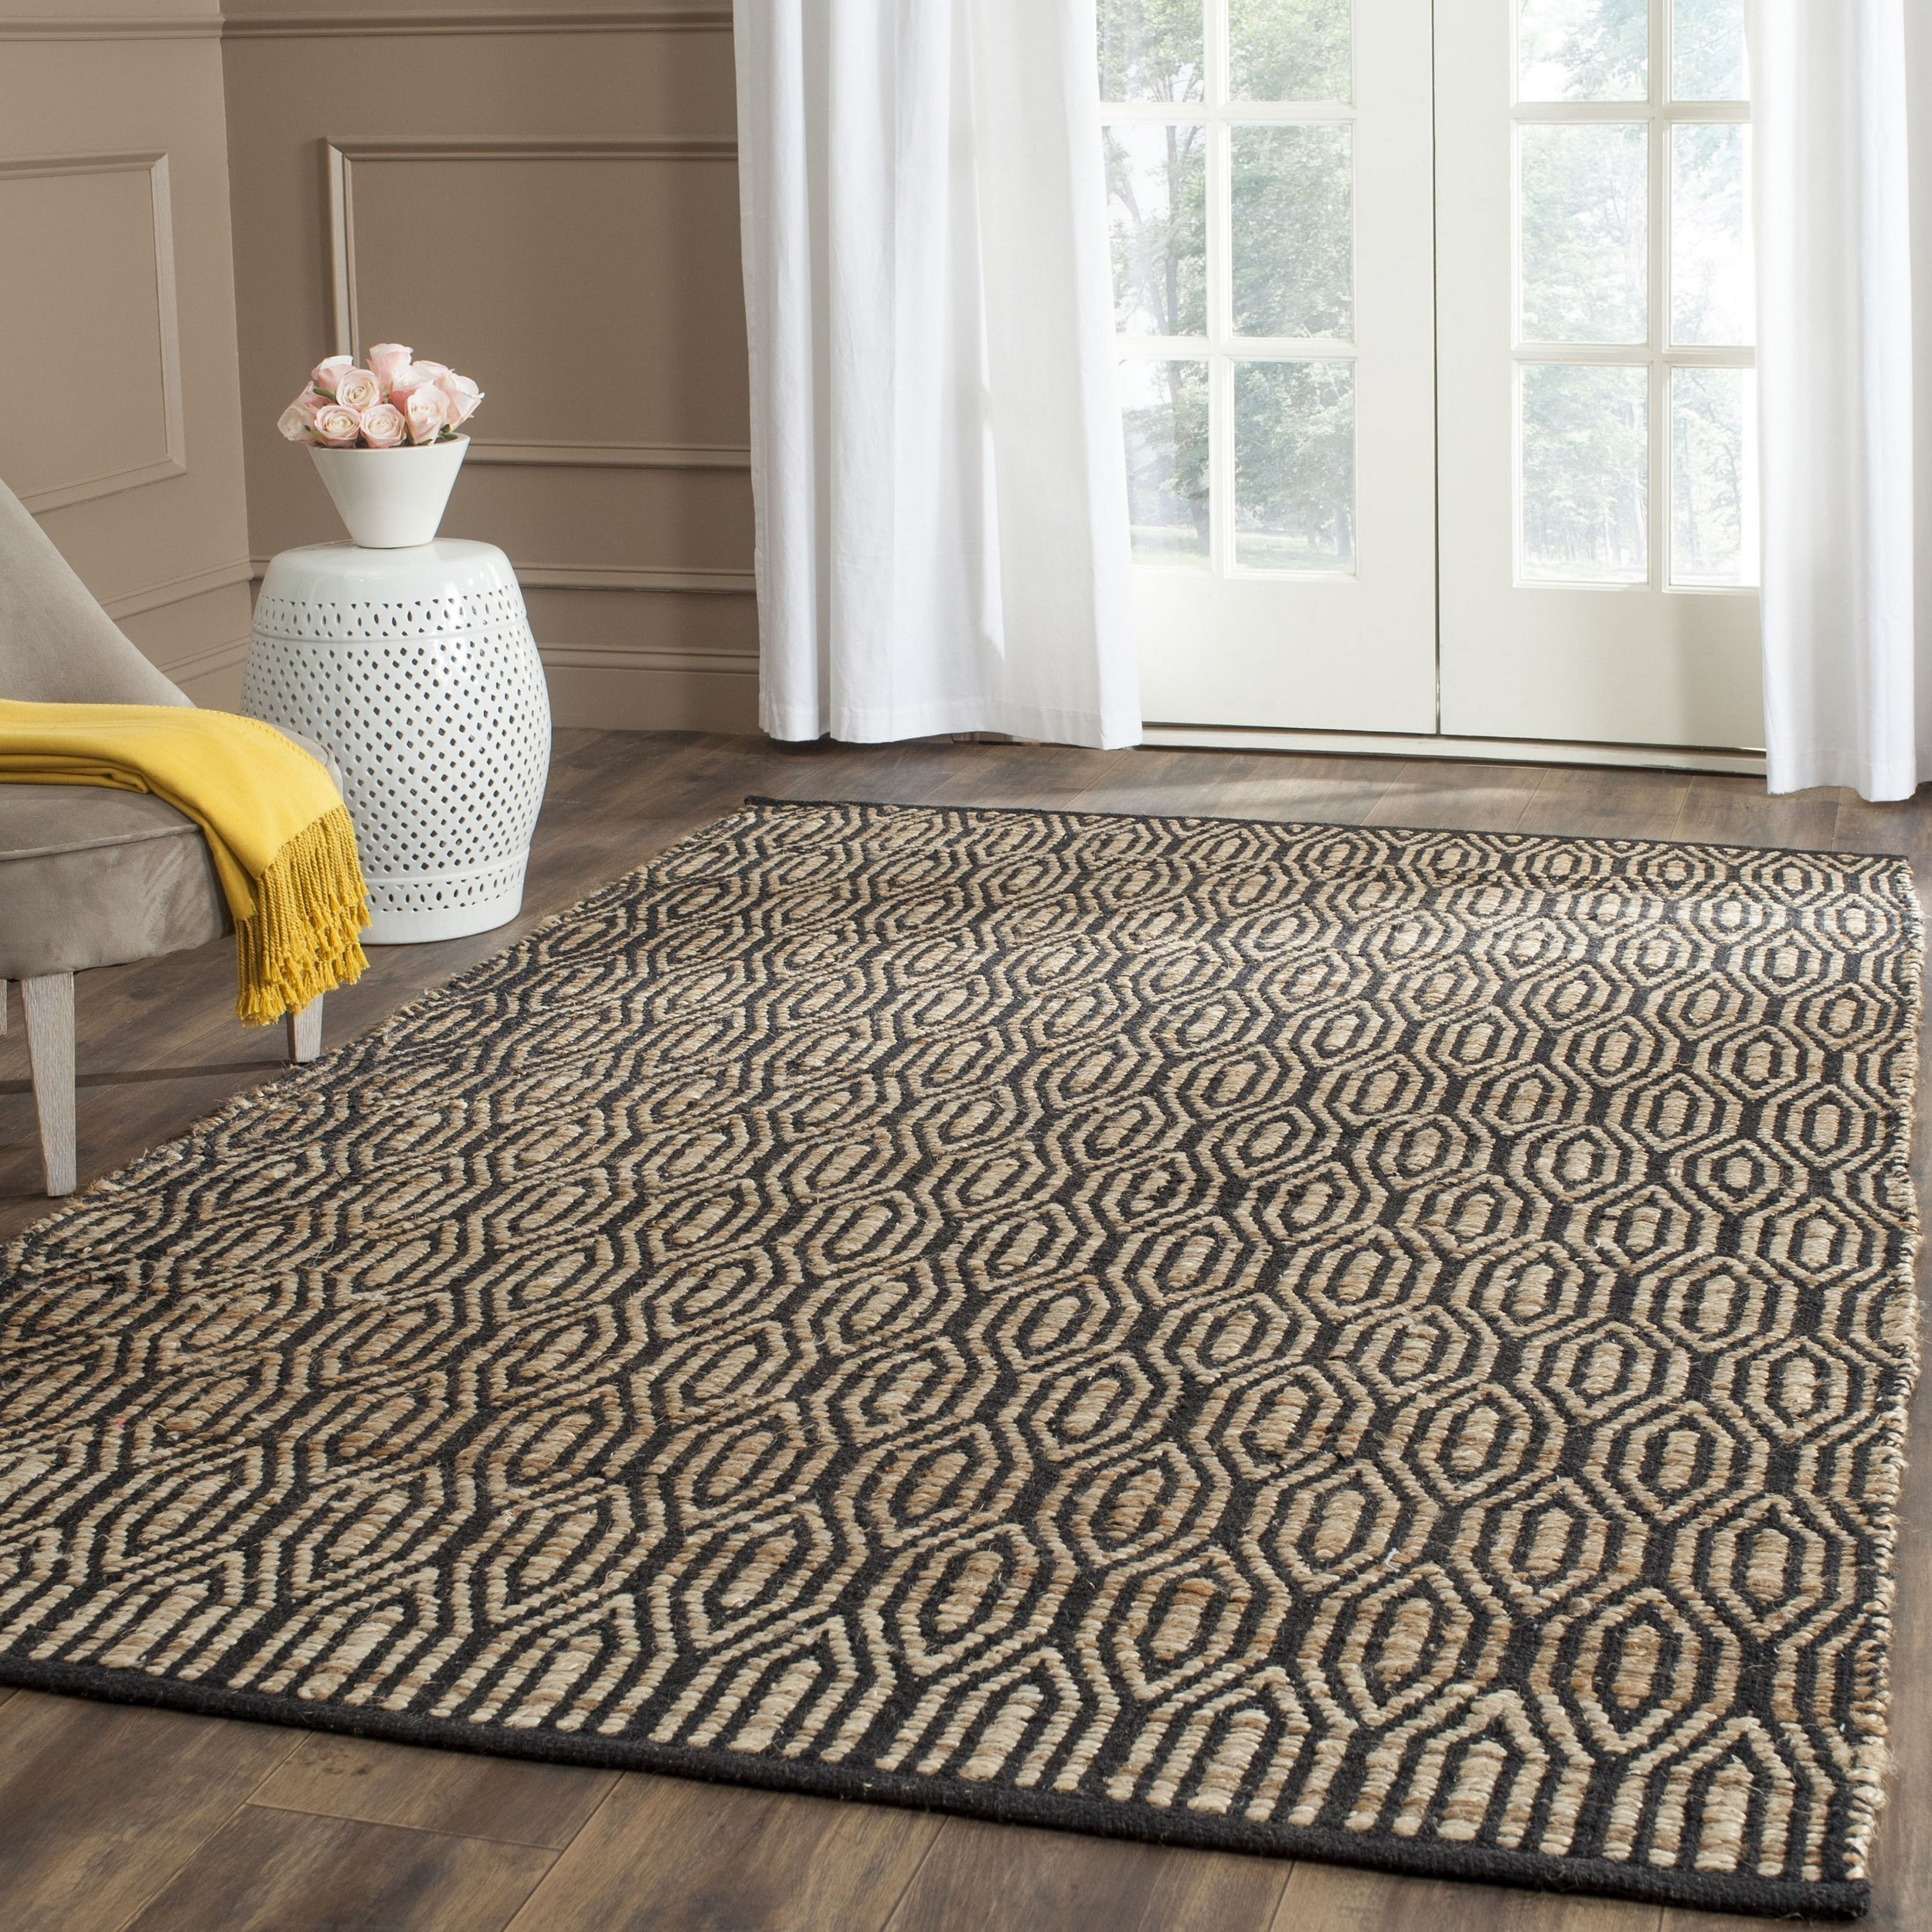 Safavieh Cape Cod Collection CAP822A Hand Woven Geometric Black and Natural Jute and Cotton Square Area Rug (6' Square) by Safavieh